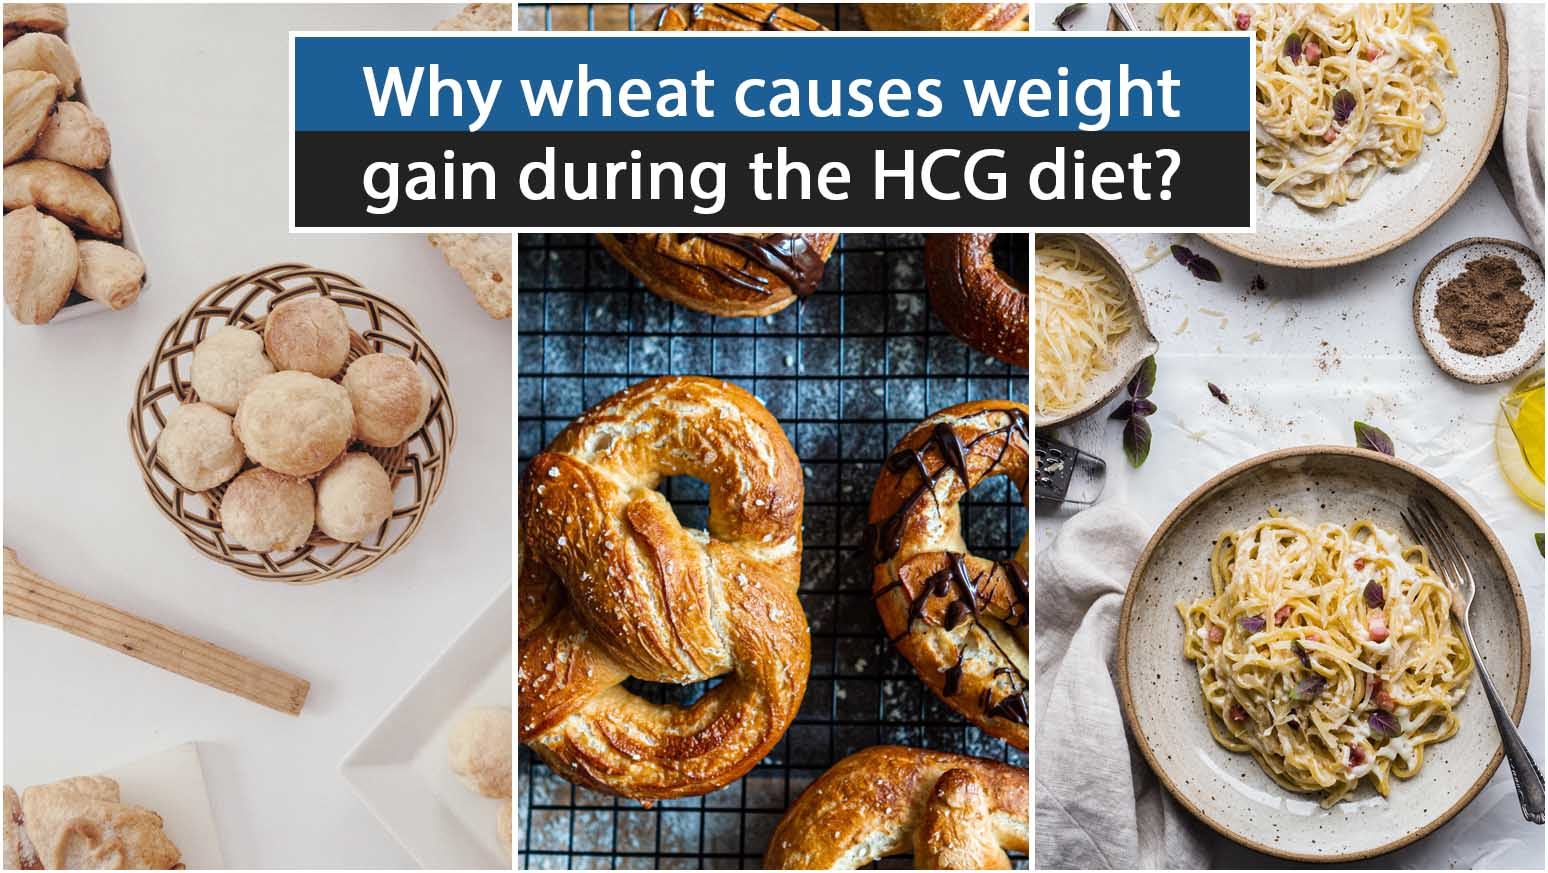 Why wheat causes weight gain during the HCG diet?